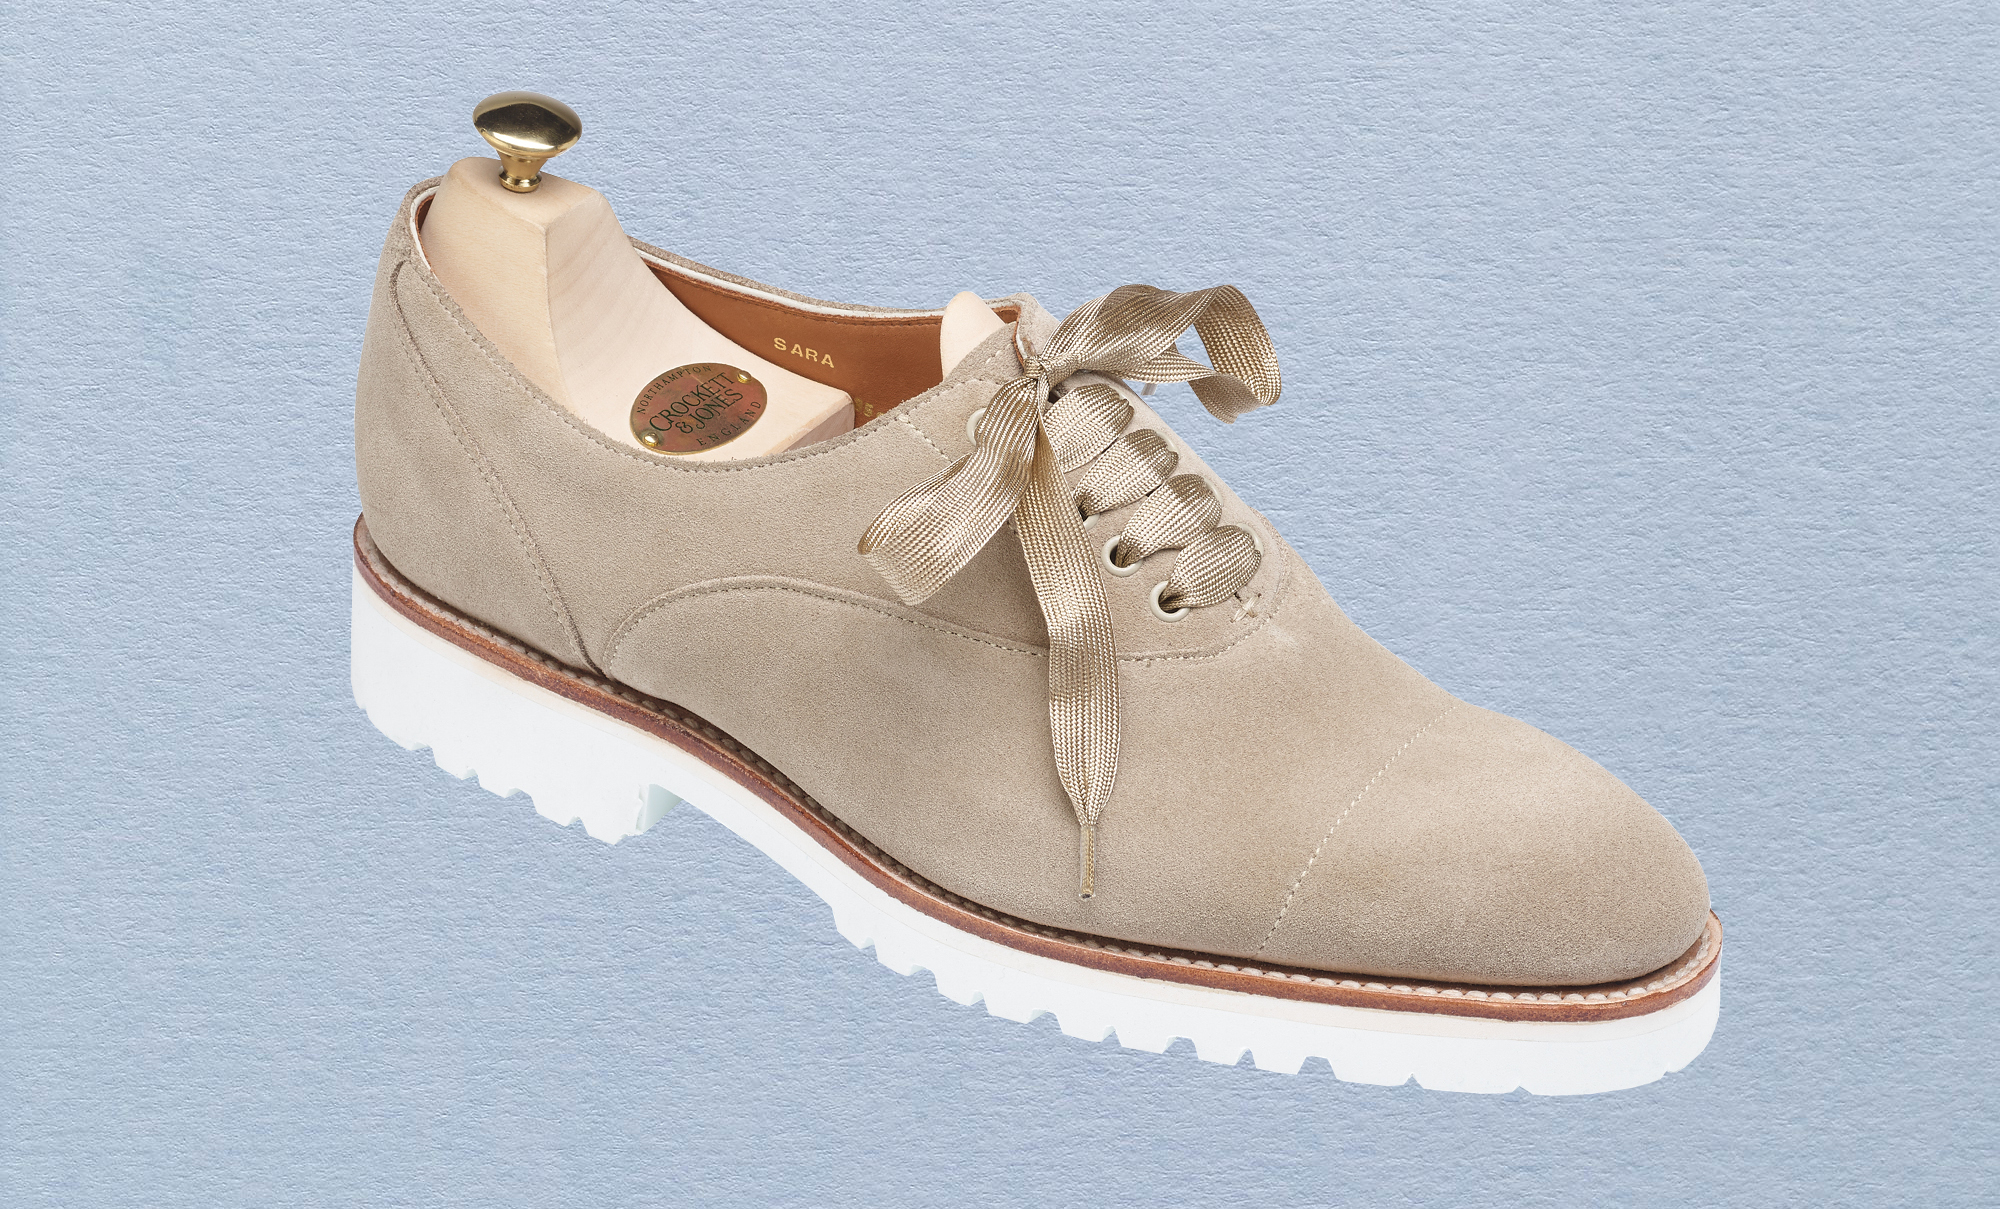 The Sara is part of the new spring/summer collection from Crockett & Jones